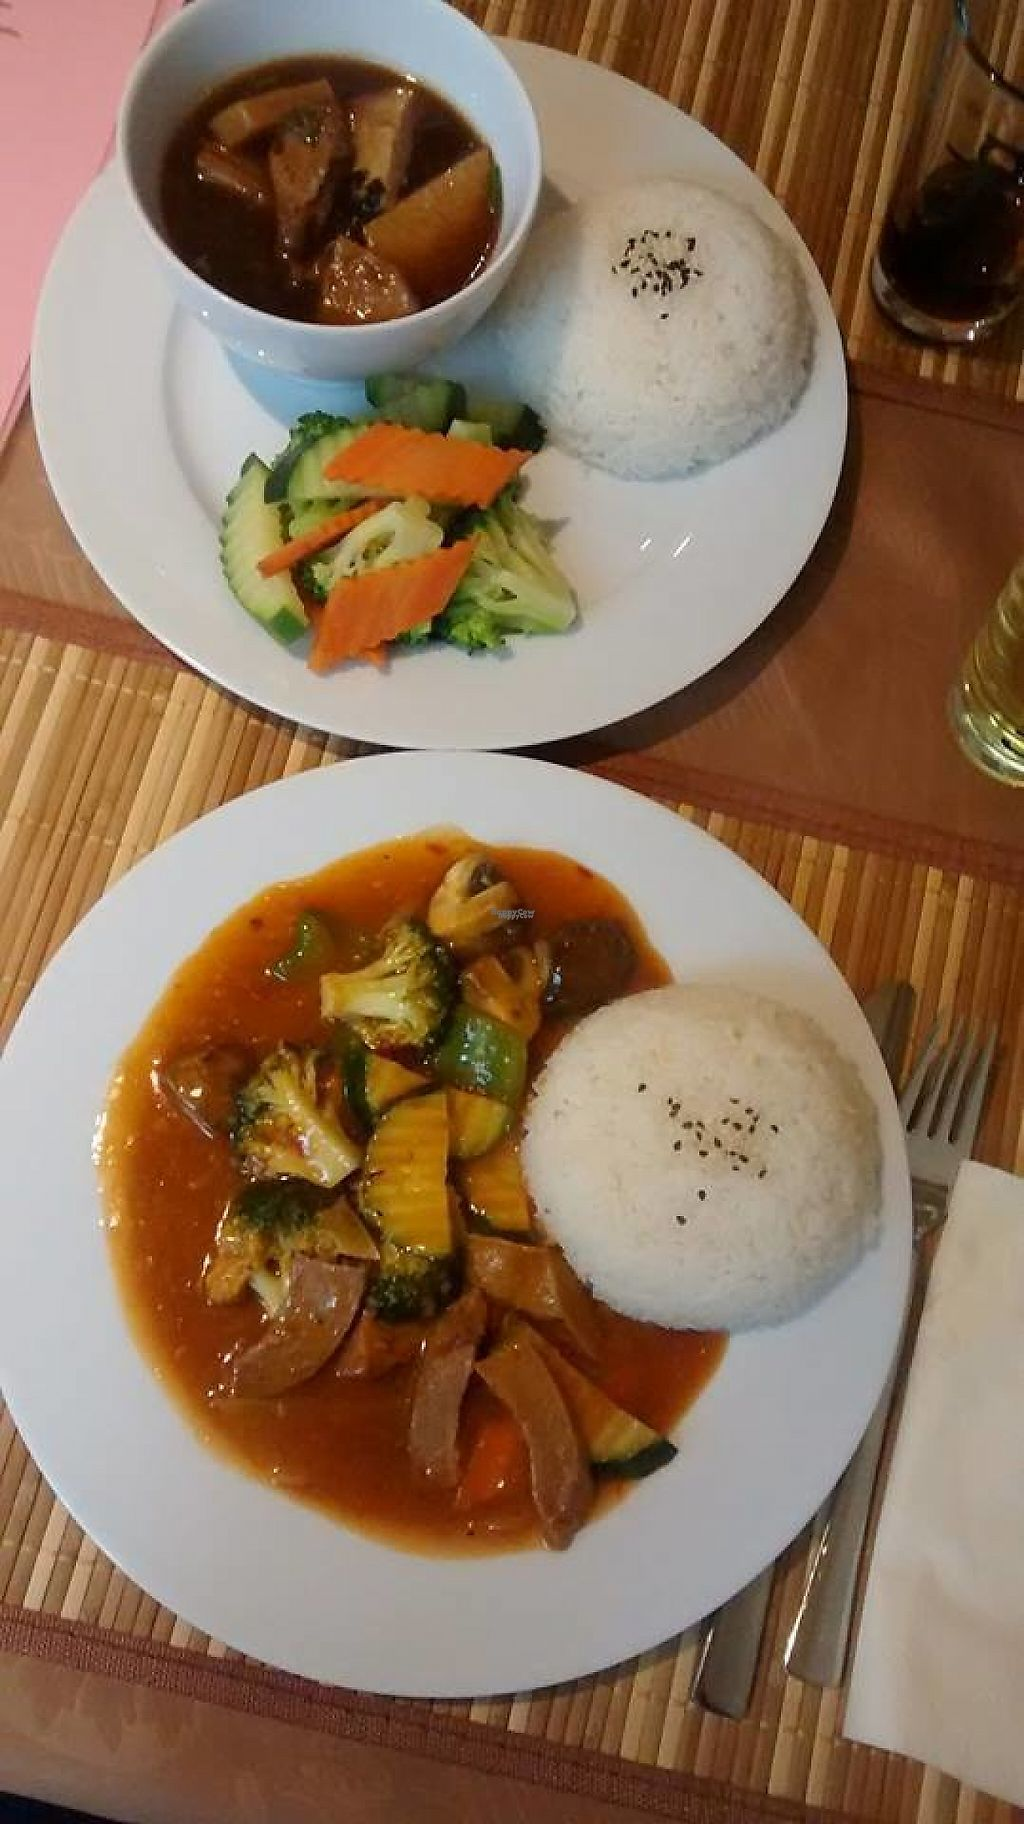 """Photo of Loving Hut  by <a href=""""/members/profile/BlisterBlue"""">BlisterBlue</a> <br/>Main dishes, really tasty! <br/> January 10, 2017  - <a href='/contact/abuse/image/22089/210319'>Report</a>"""